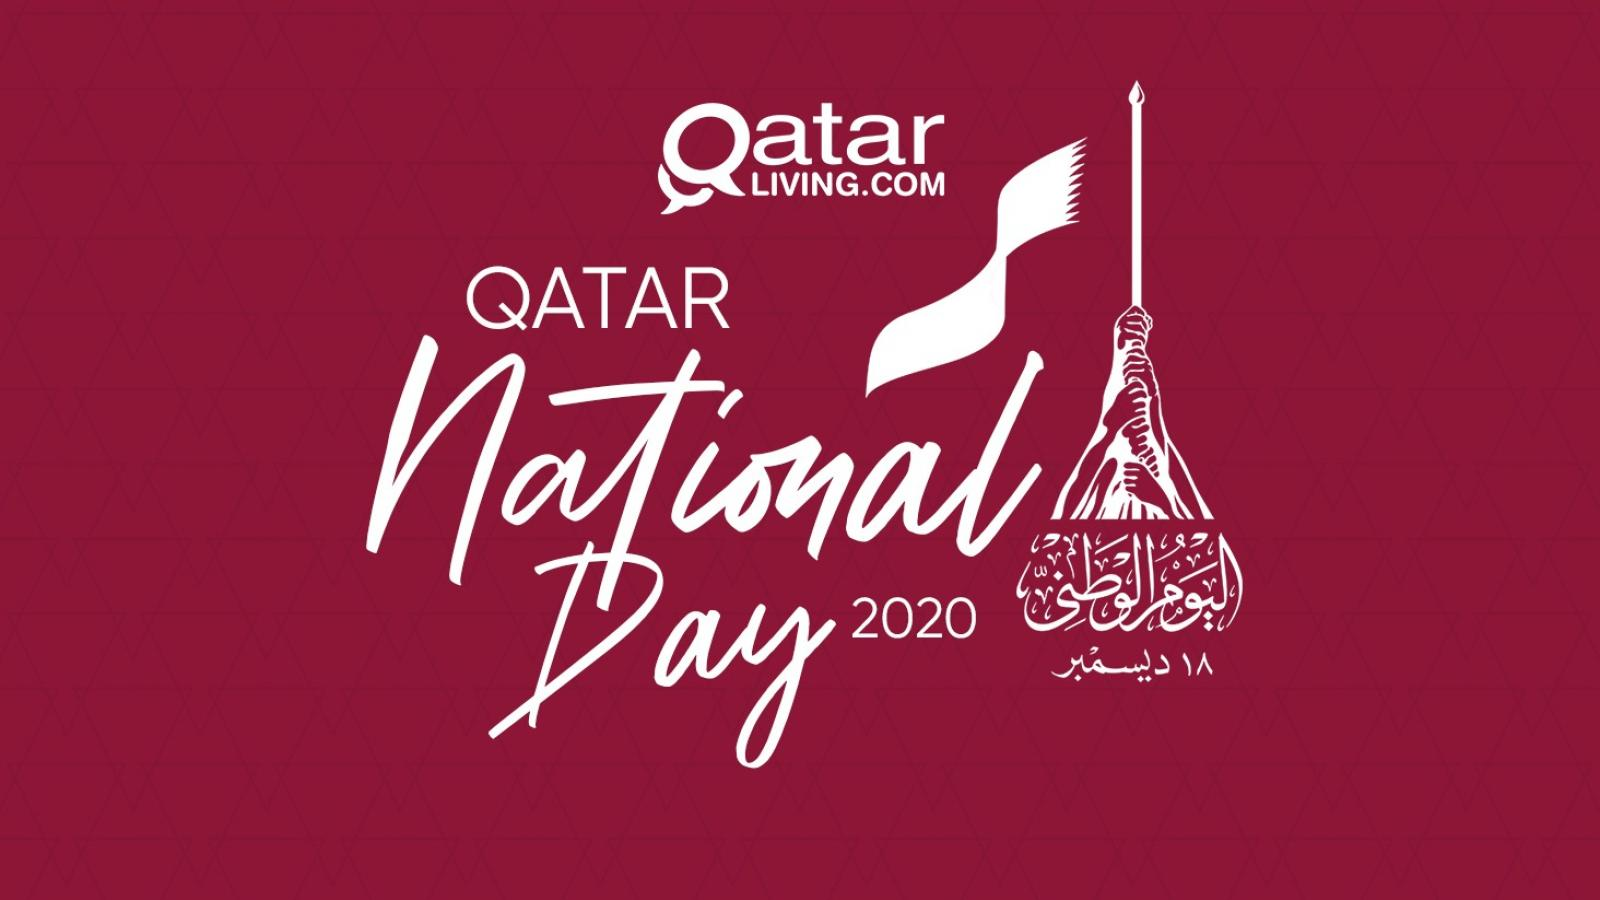 Your guide to Qatar National Day 2020